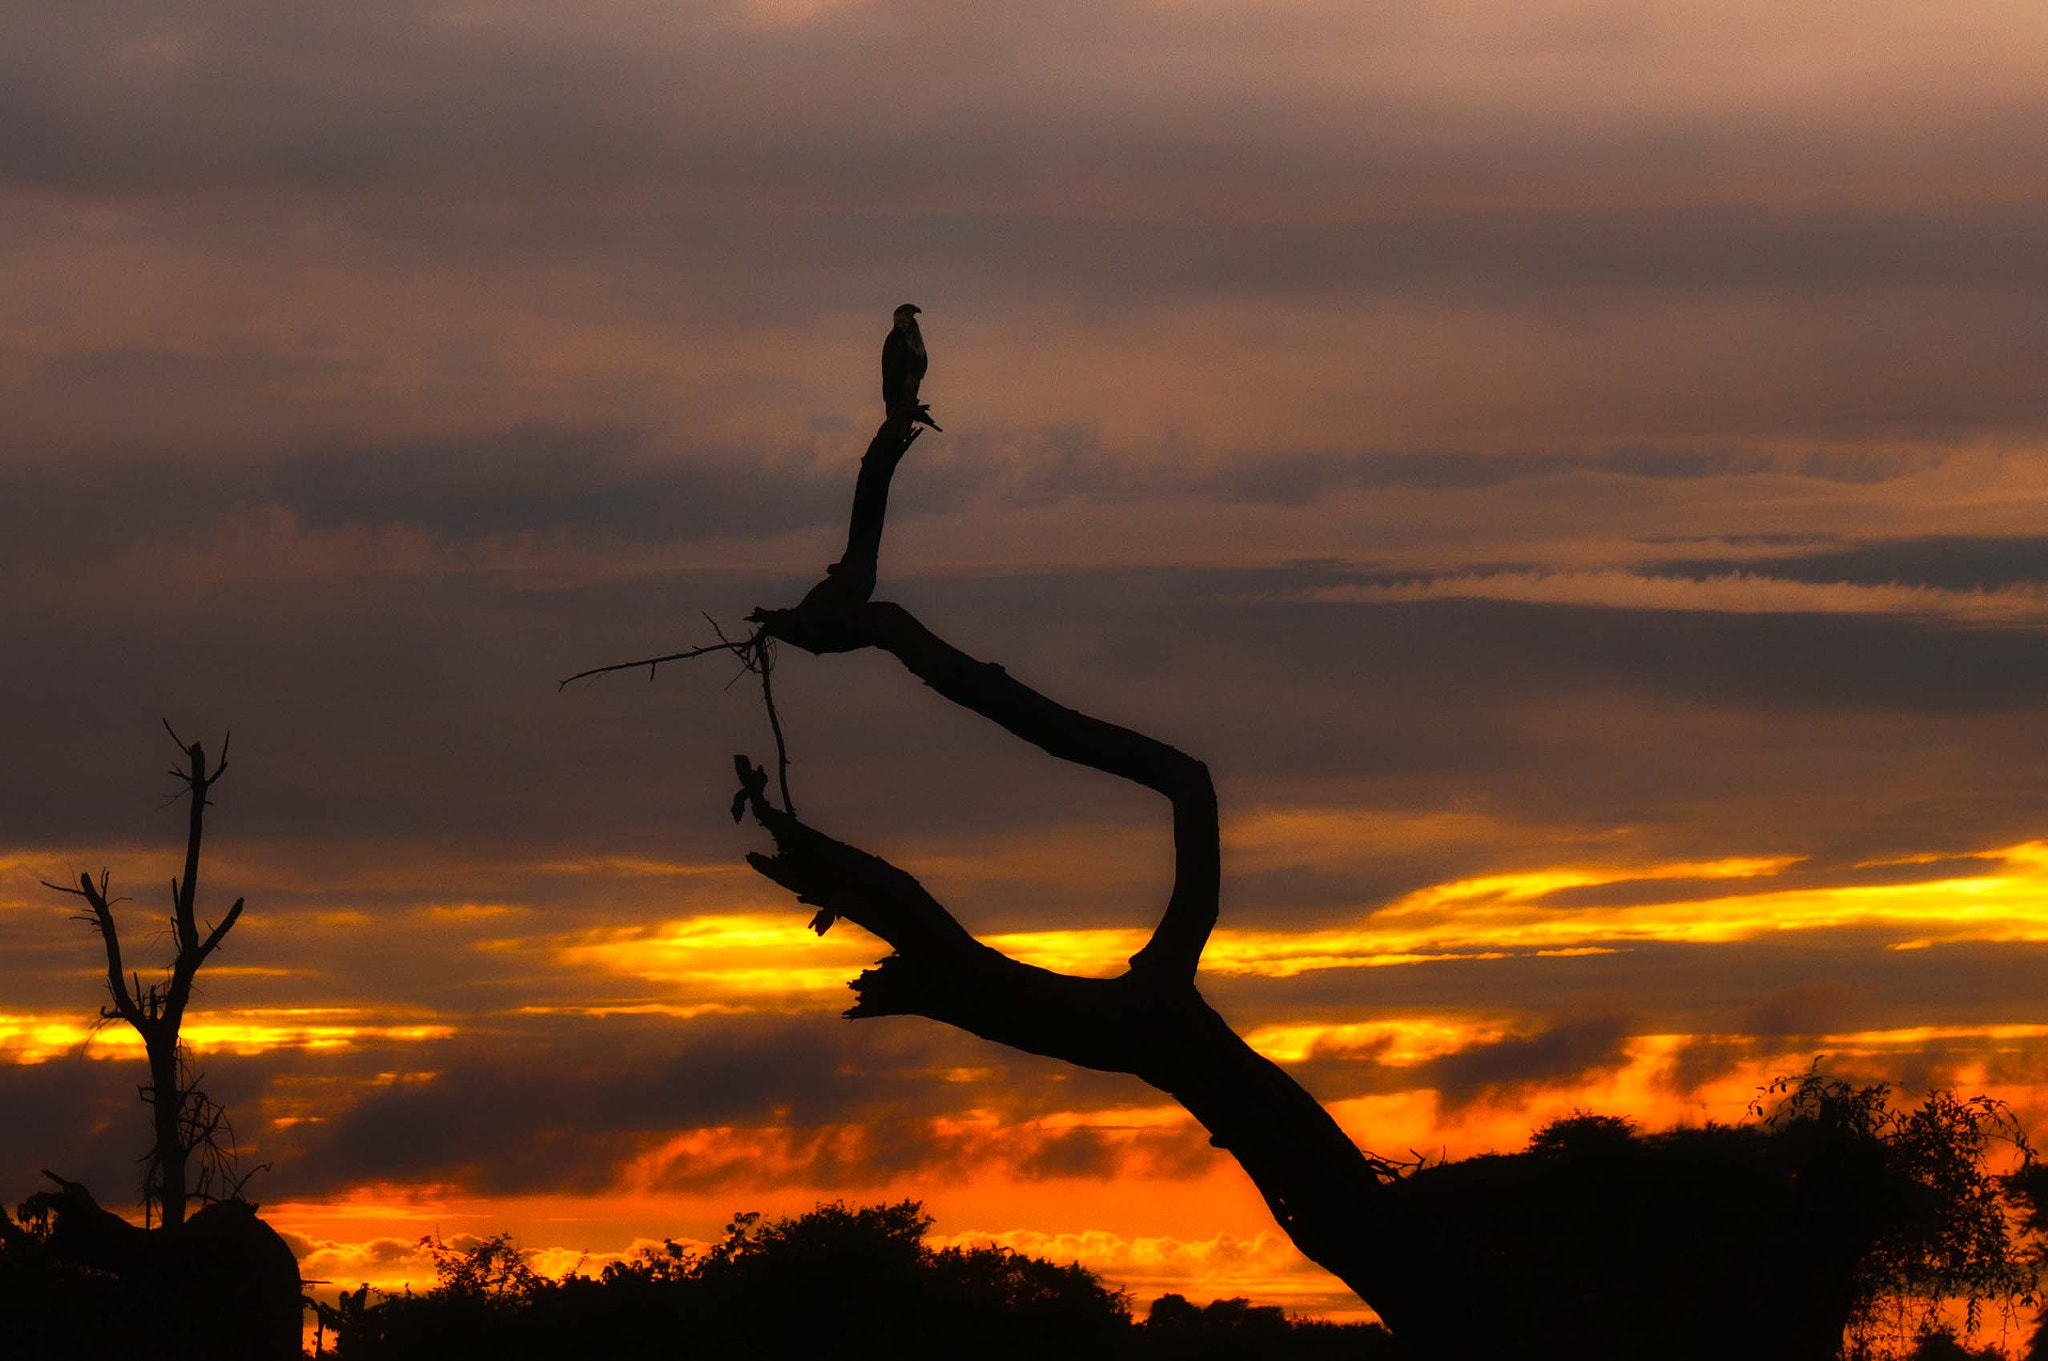 Photograph Eagle at Dusk by Jitendra Sharma on 500px